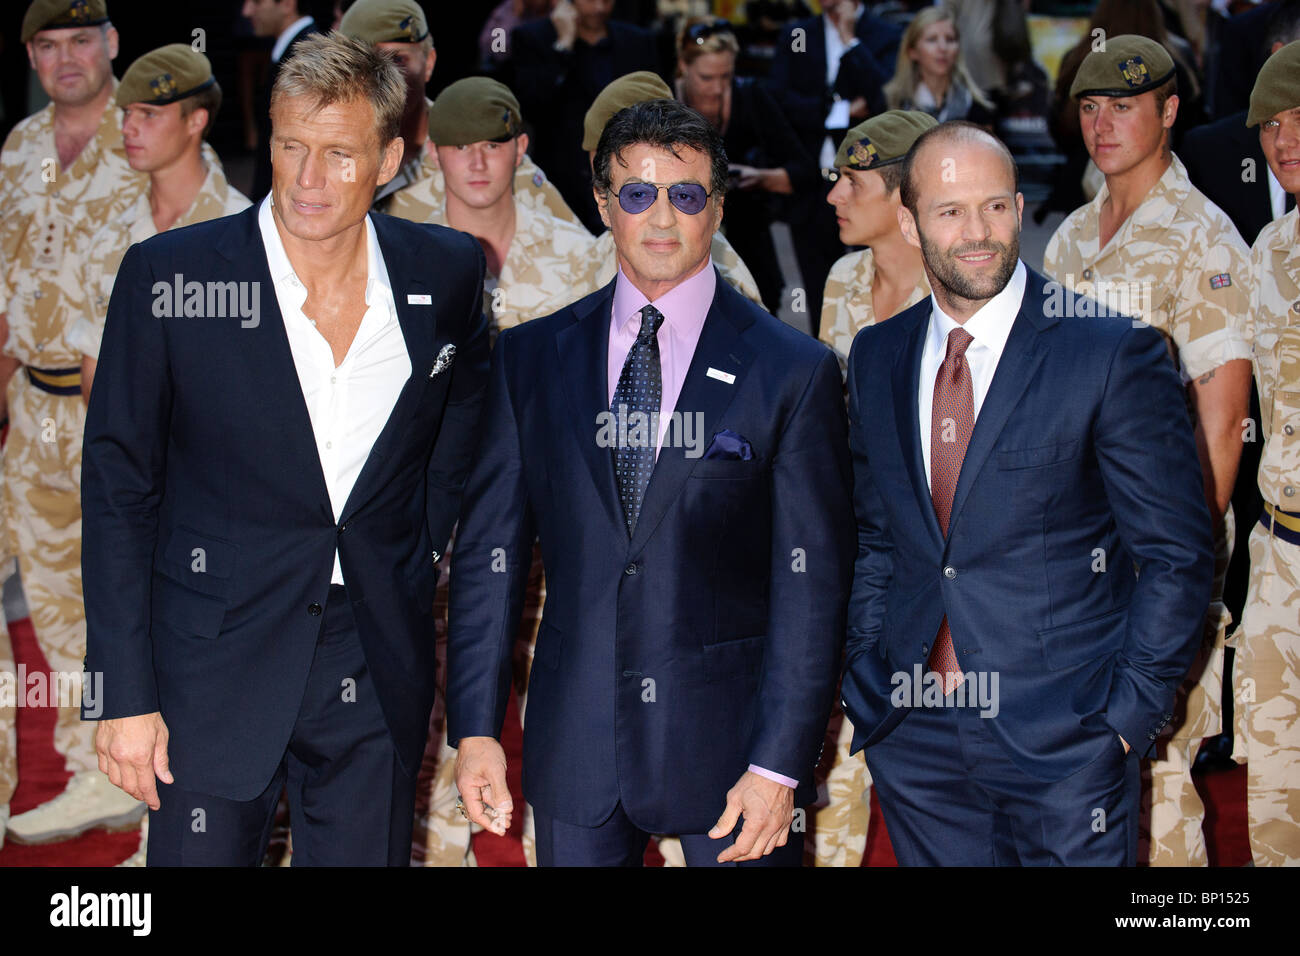 Dolph Lundgren, Sylvester Stallone, Jason Statham at the UK Premiere of 'The Expendables', Leicester Square, - Stock Image